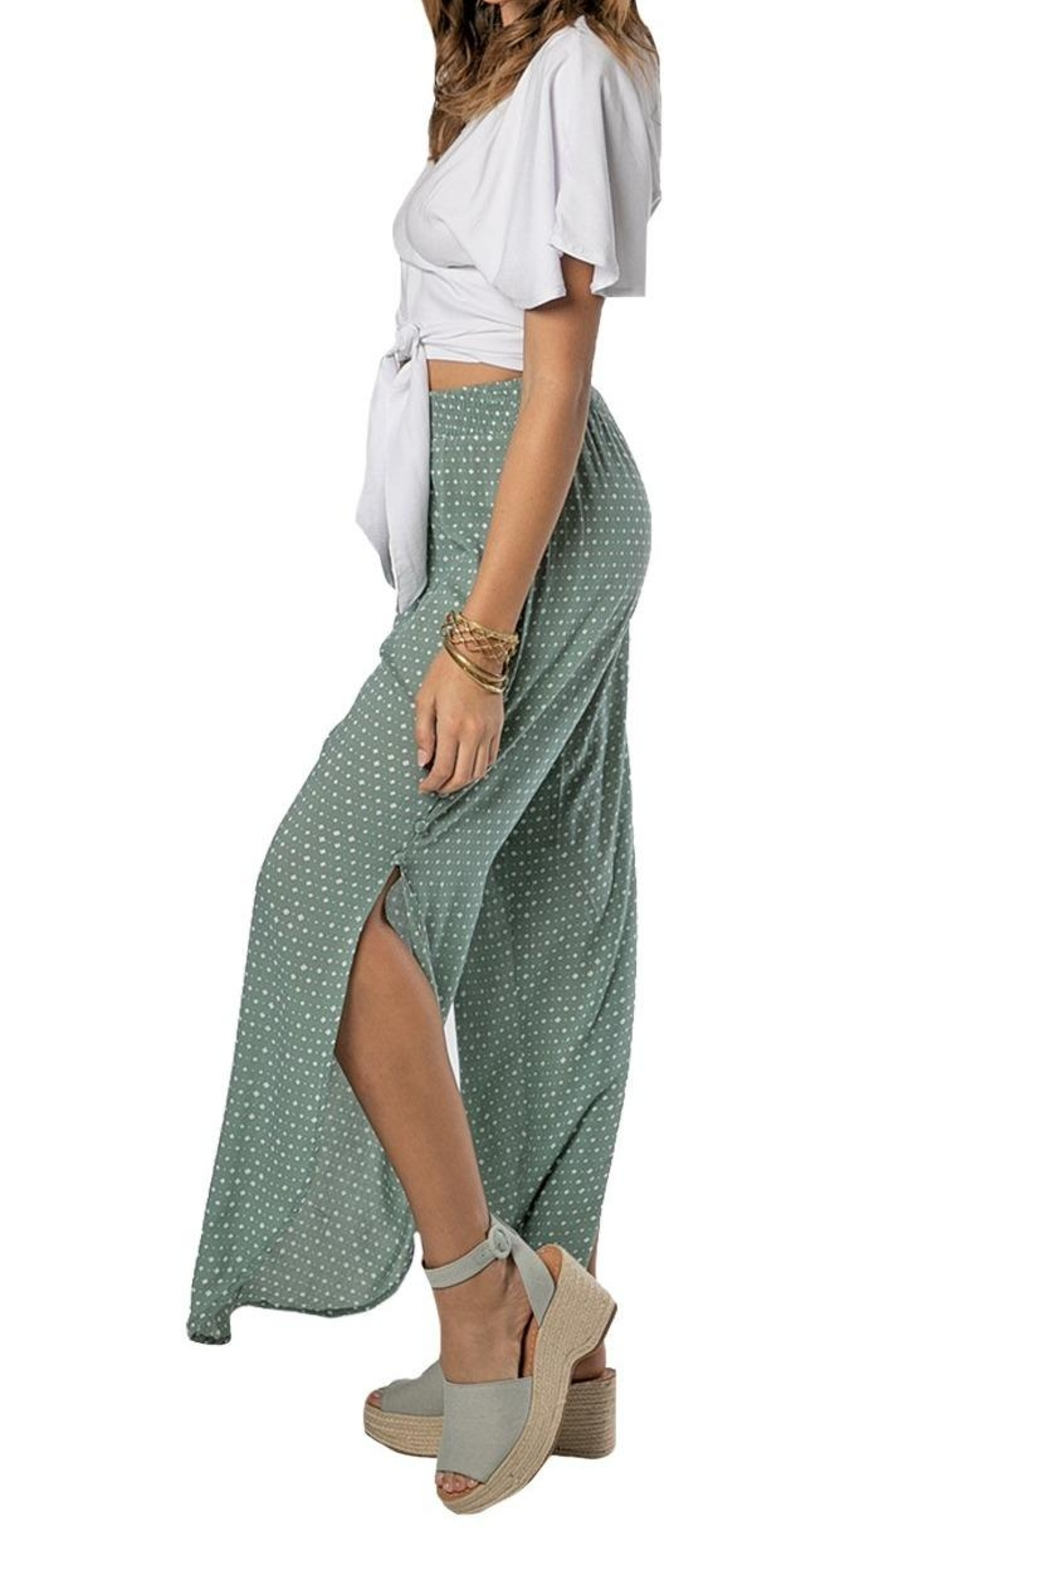 Khush Clothing Lavinia Wrap Around Tie Crop Top - Front Full Image